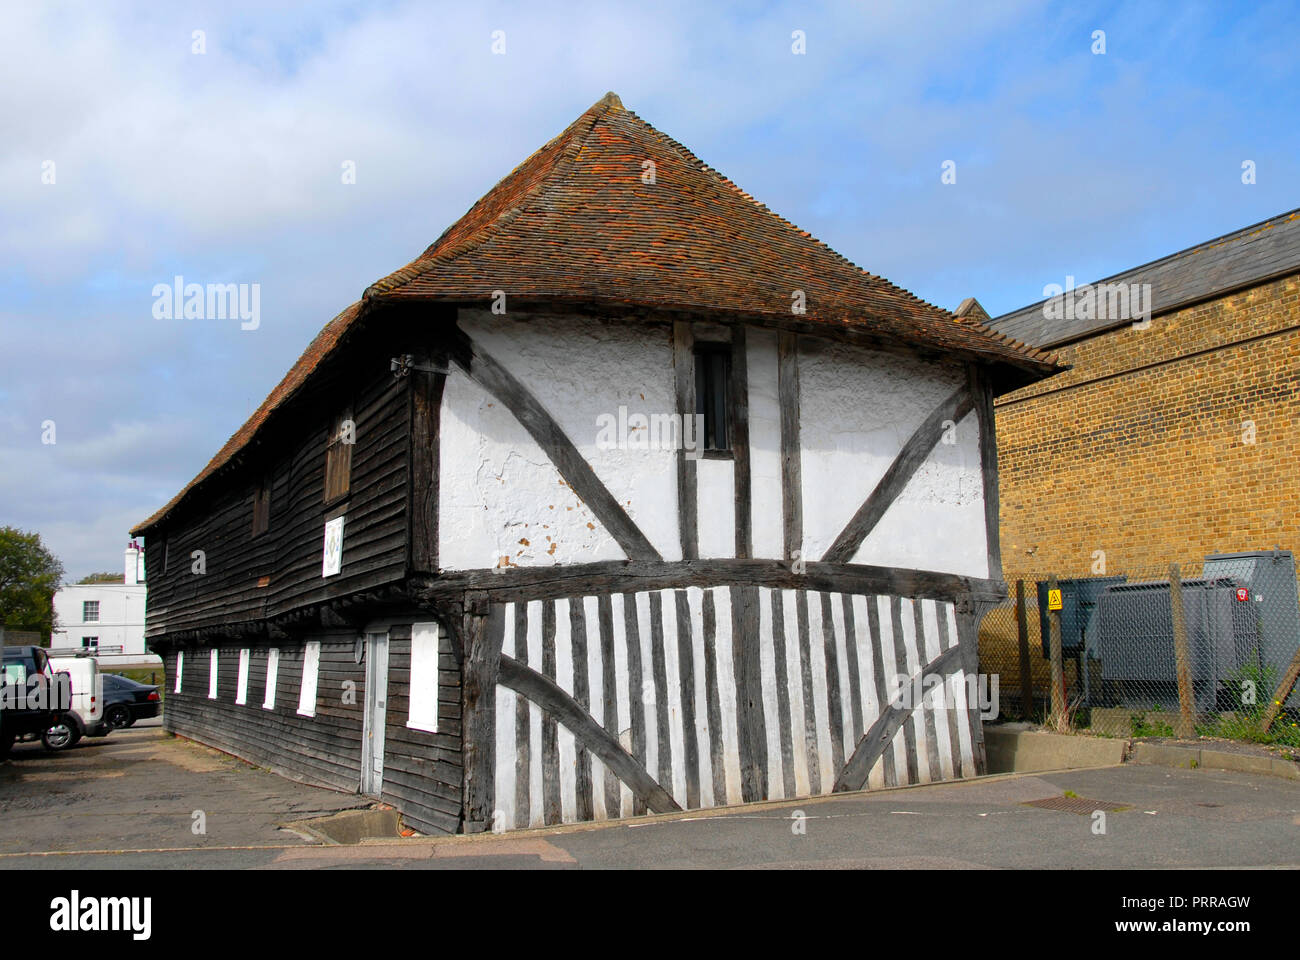 Old 15th century road-side building, Conduit Street, Faversham, Kent, England - Stock Image